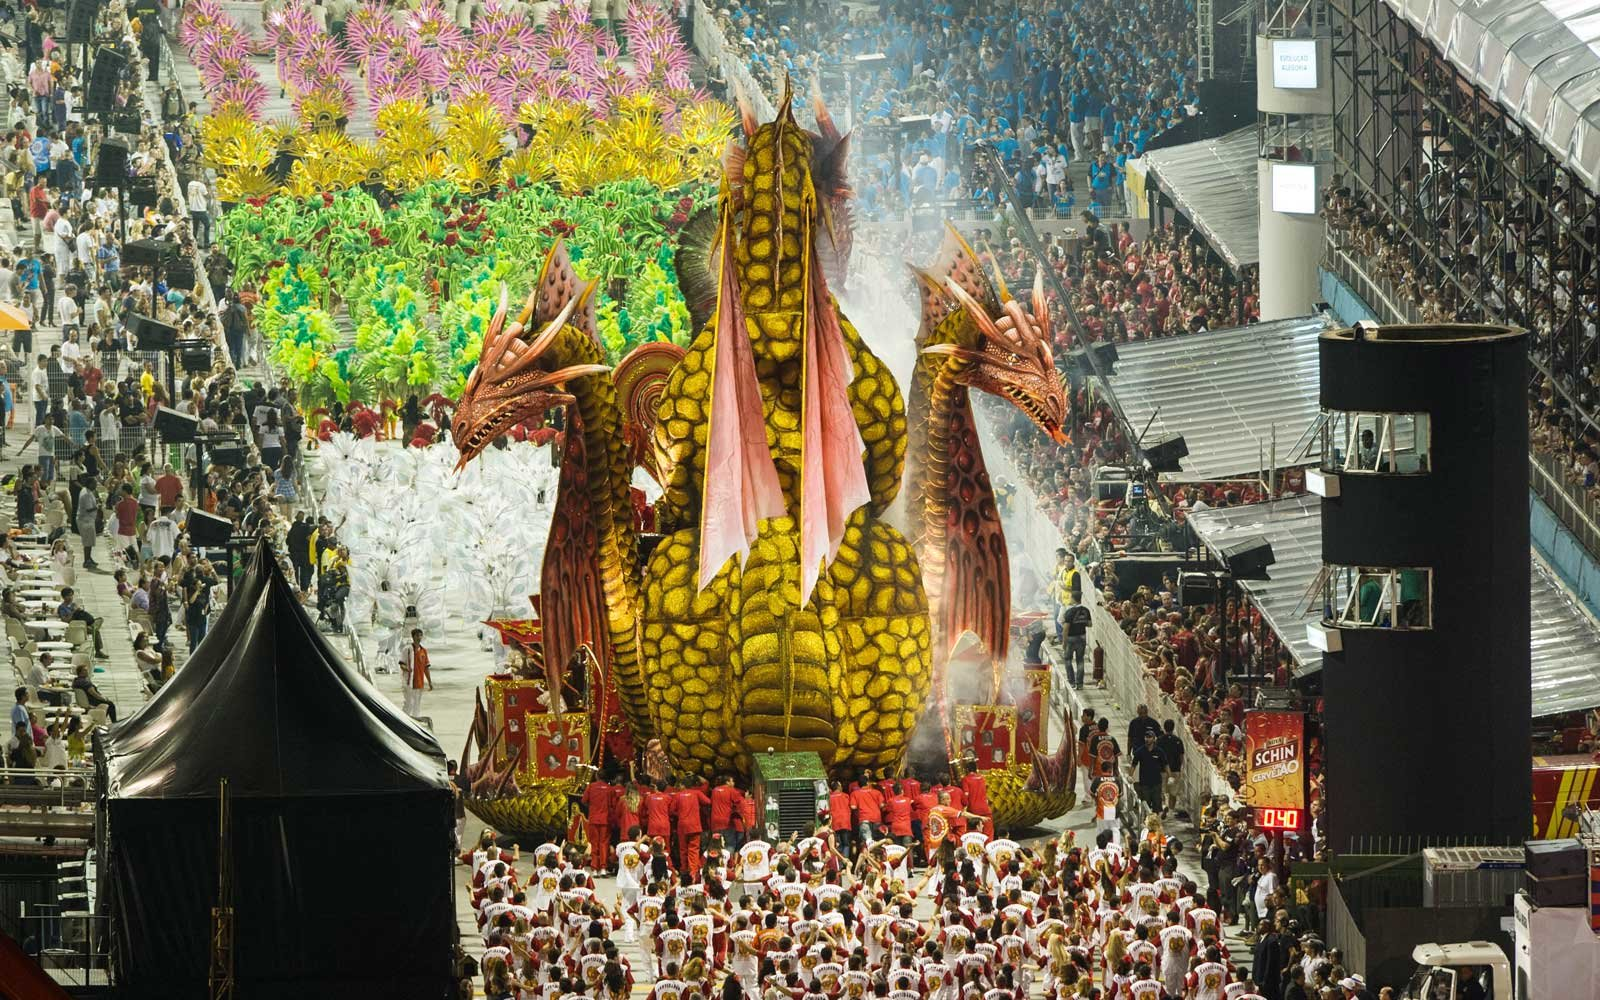 Carnival celebrations at the samba school parade in Sao Paulo, Brazil